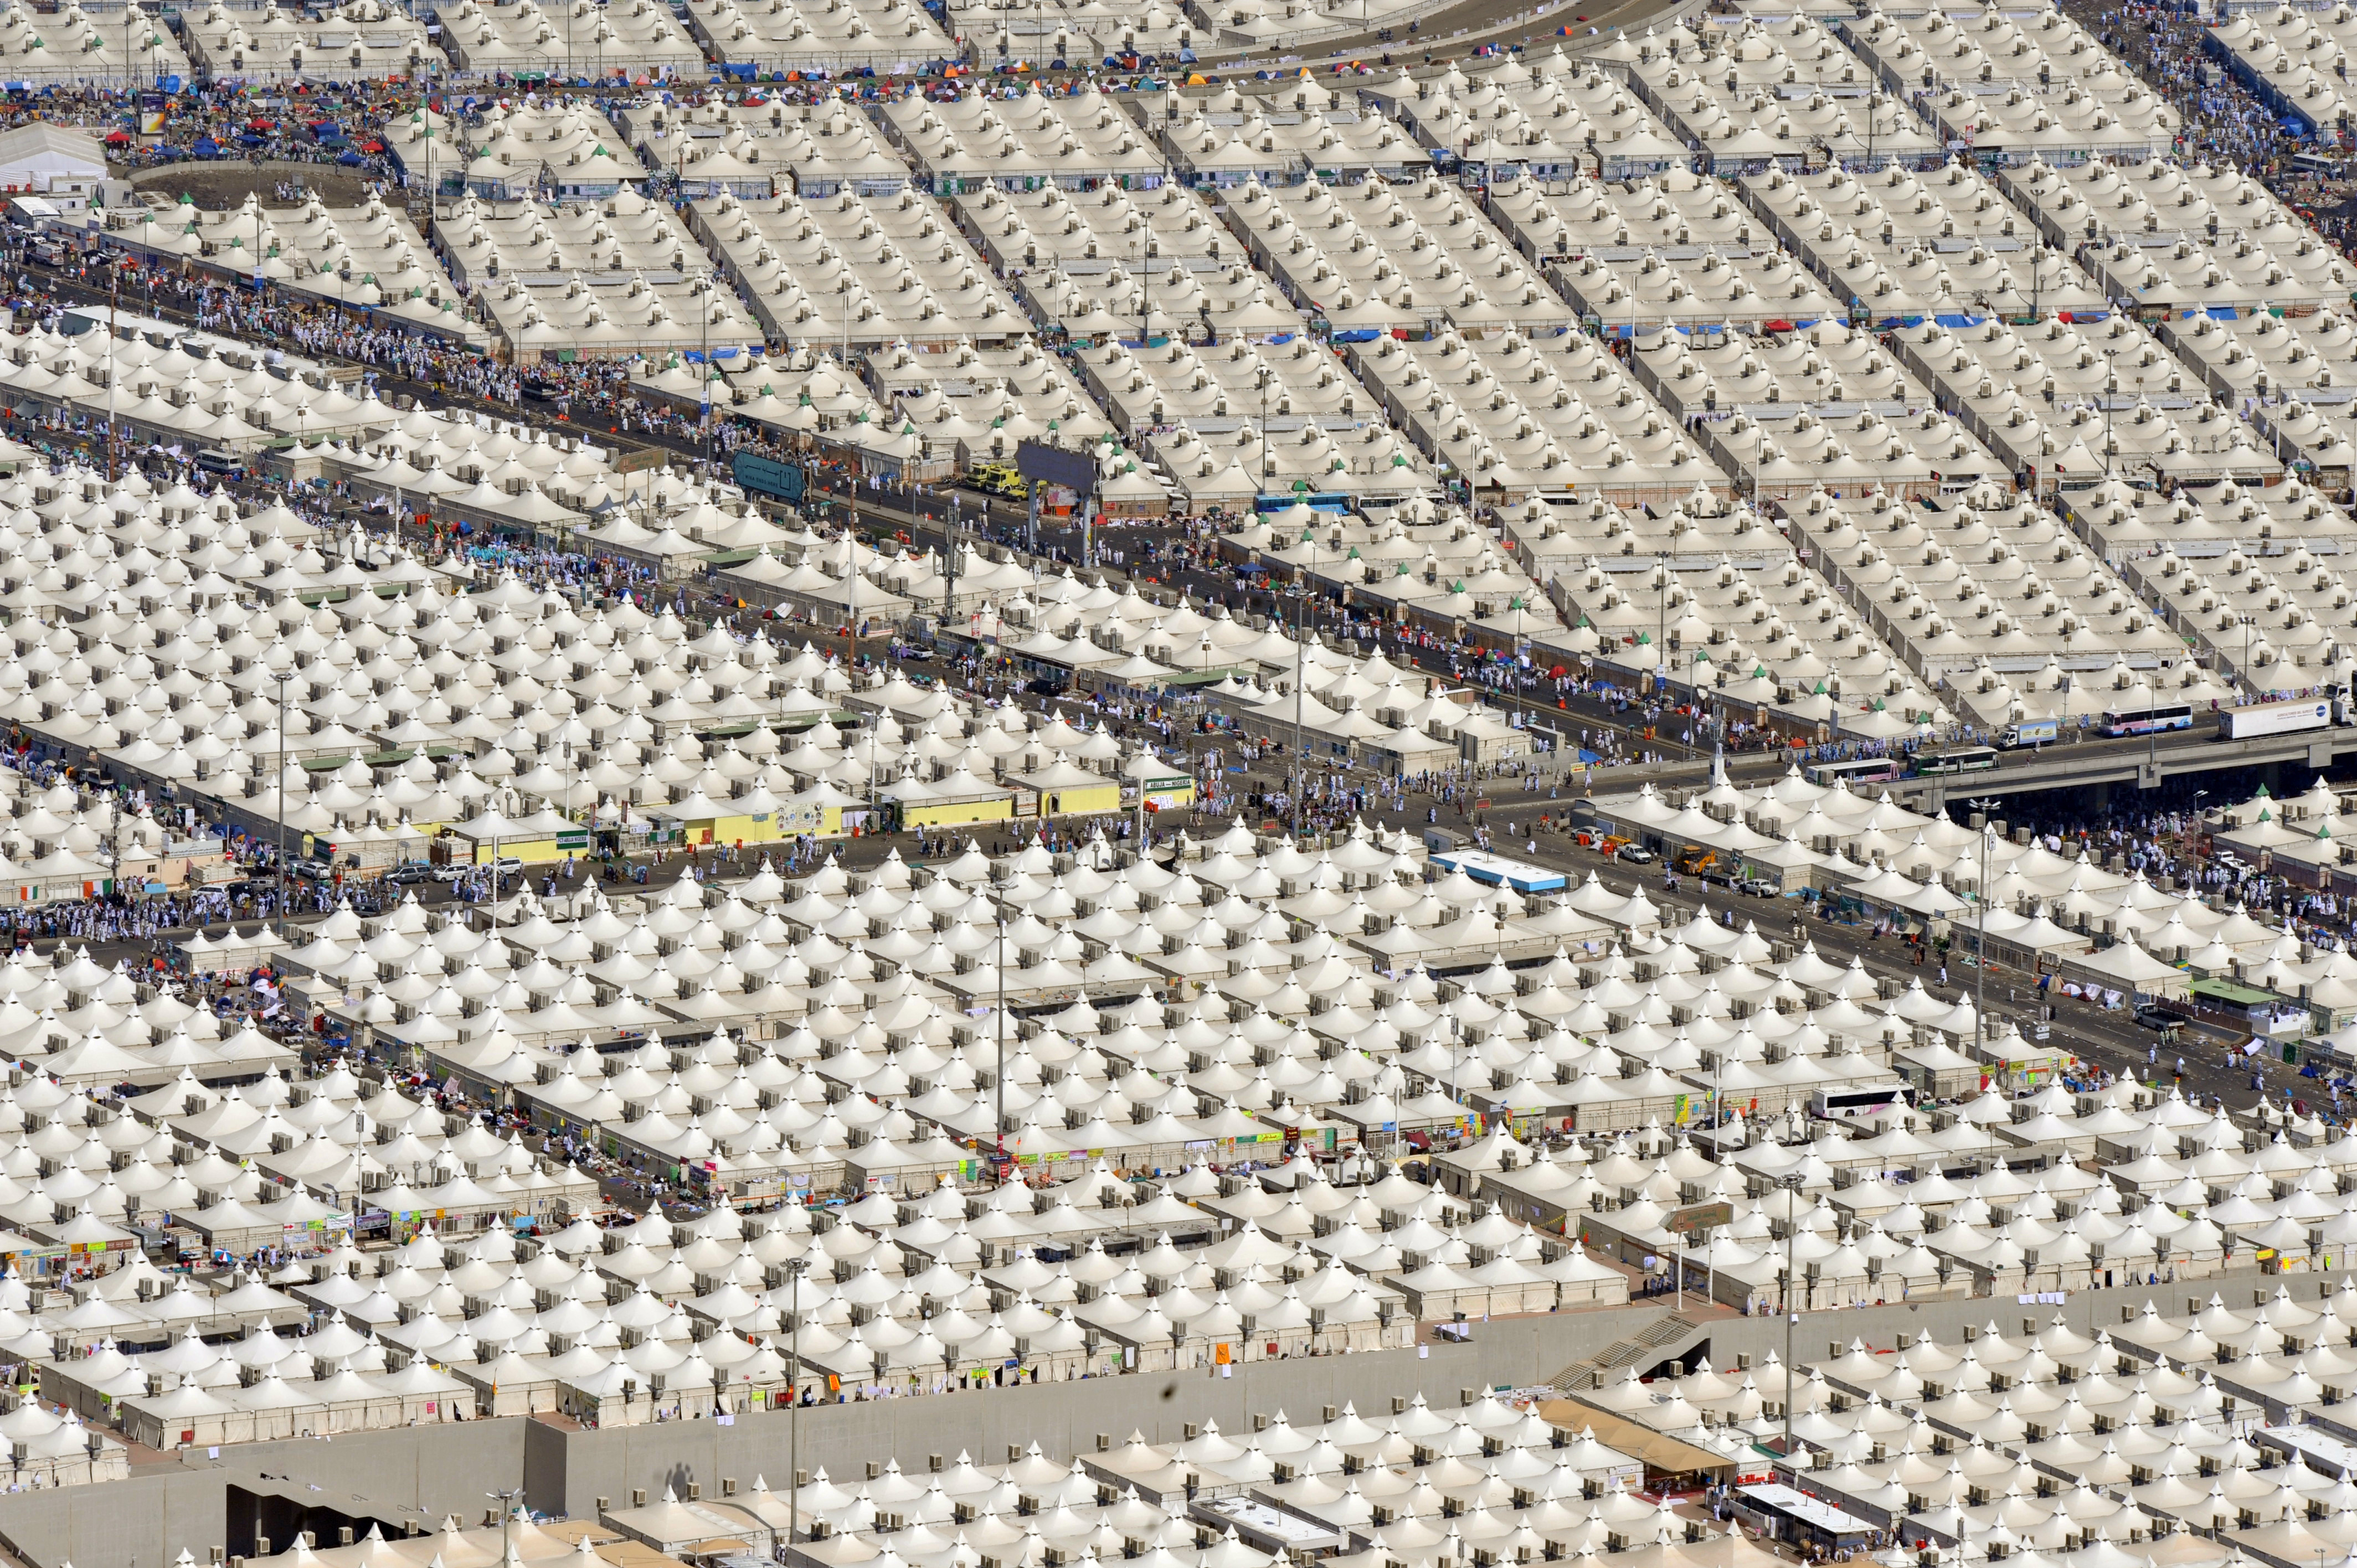 An aerial view taken on October 27 2012 shows of thousands of pilgrimsu0027 tents in Mina during the annual Hajj. FAYEZ NURELDINE/AFP/Getty Images & Hajj the Islamic pilgrimage to Mecca explained for non-Muslims - Vox